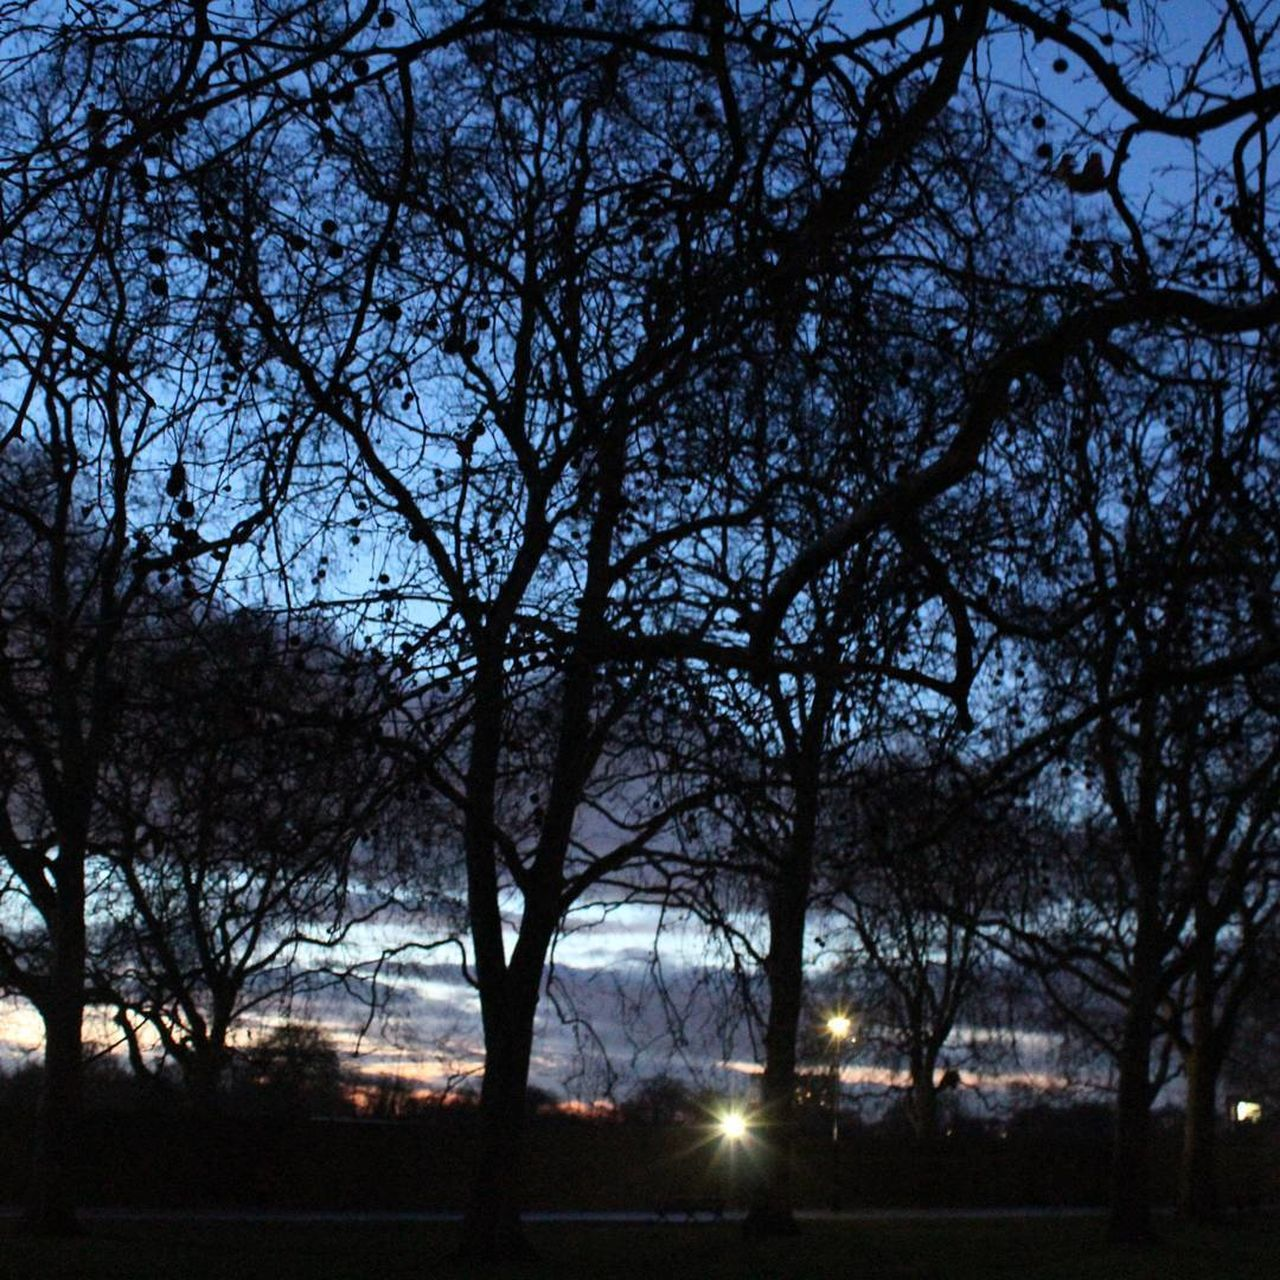 tree, bare tree, night, nature, outdoors, silhouette, no people, tranquility, beauty in nature, scenics, branch, sky